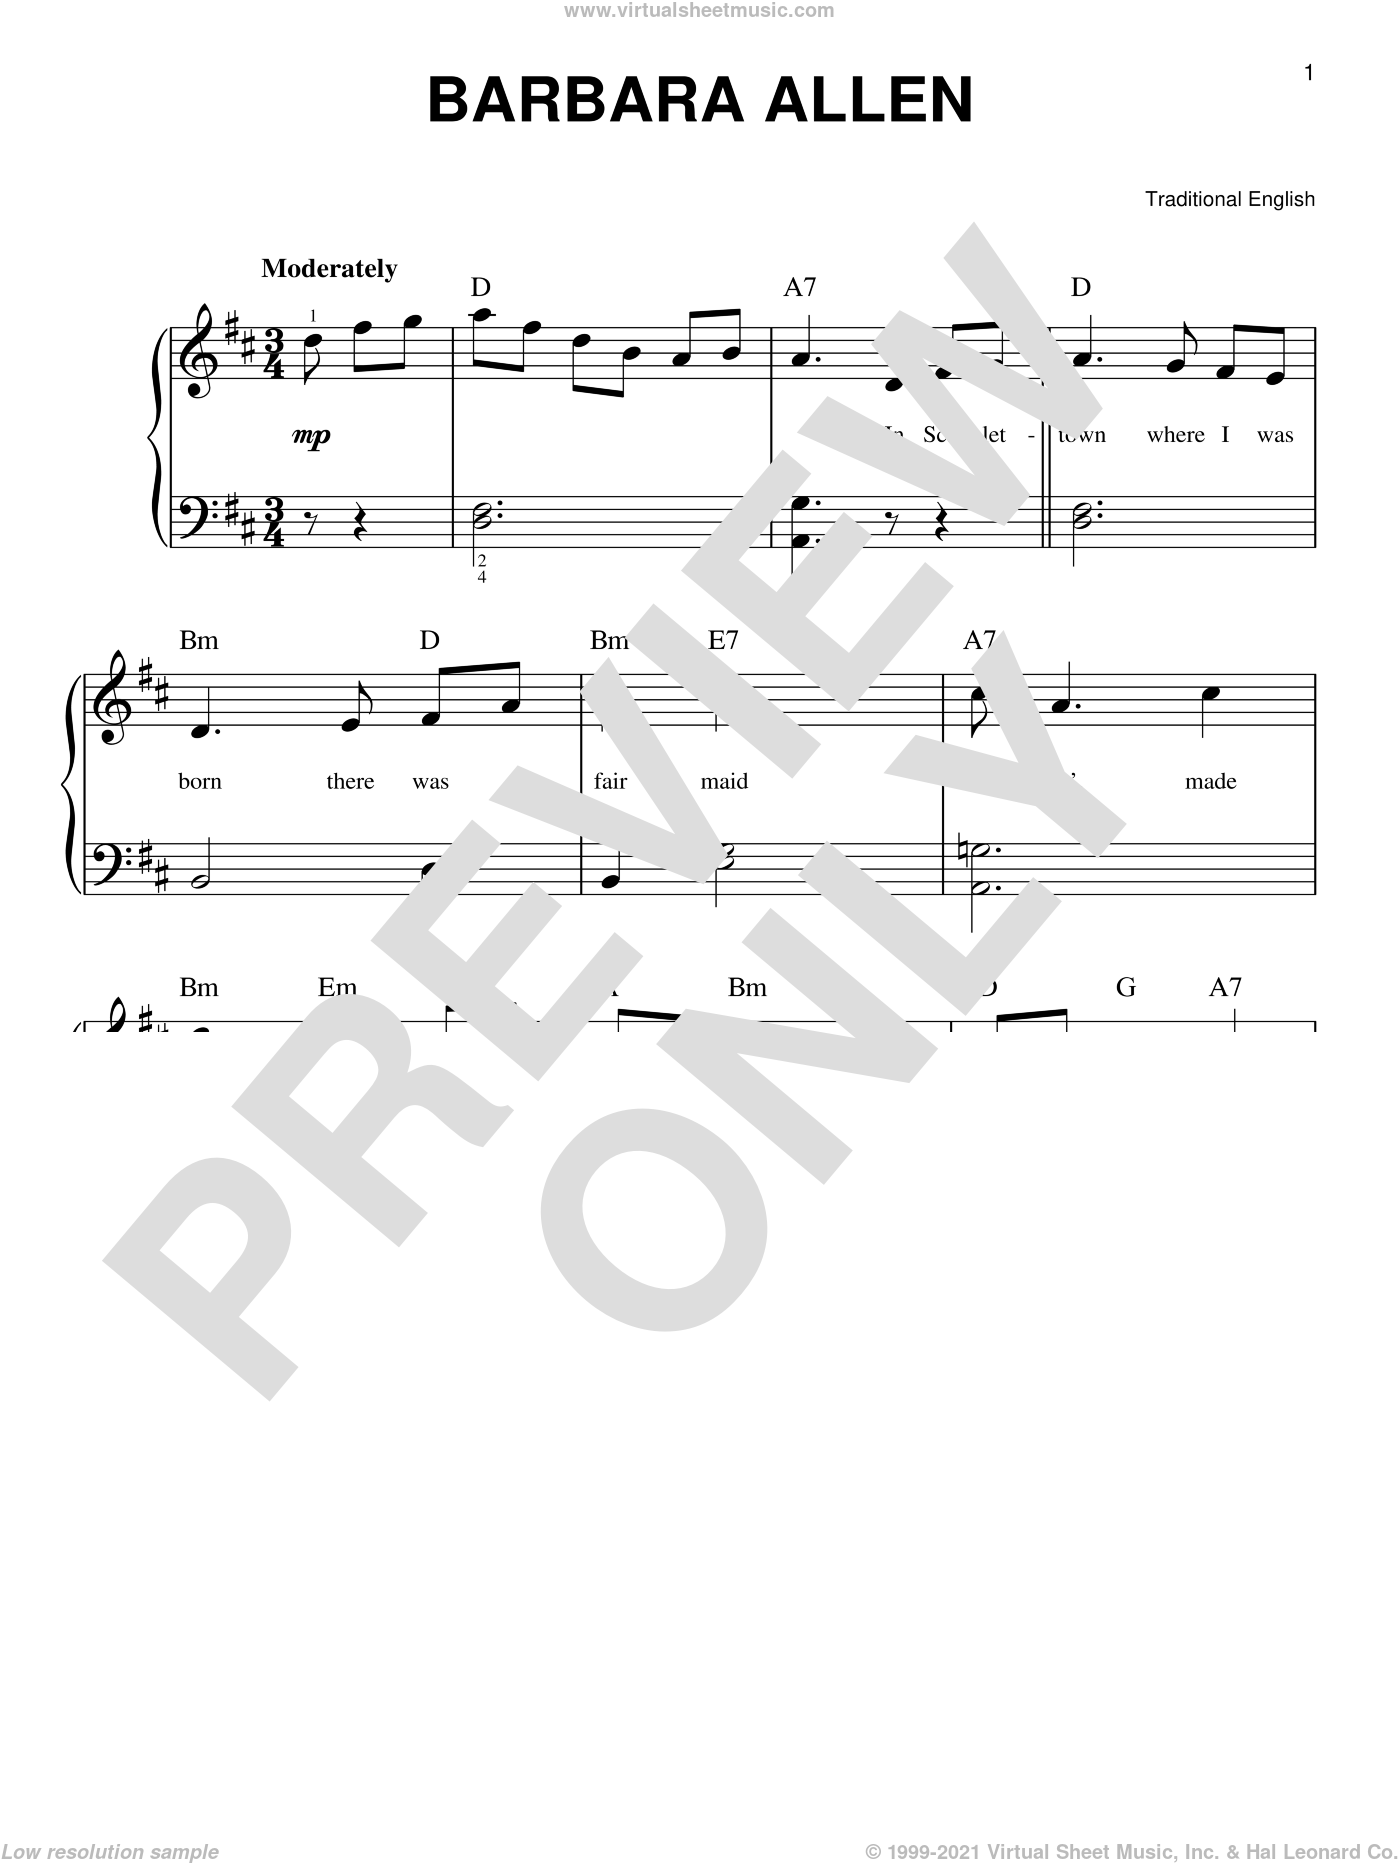 Barbara Allen sheet music for piano solo, beginner skill level